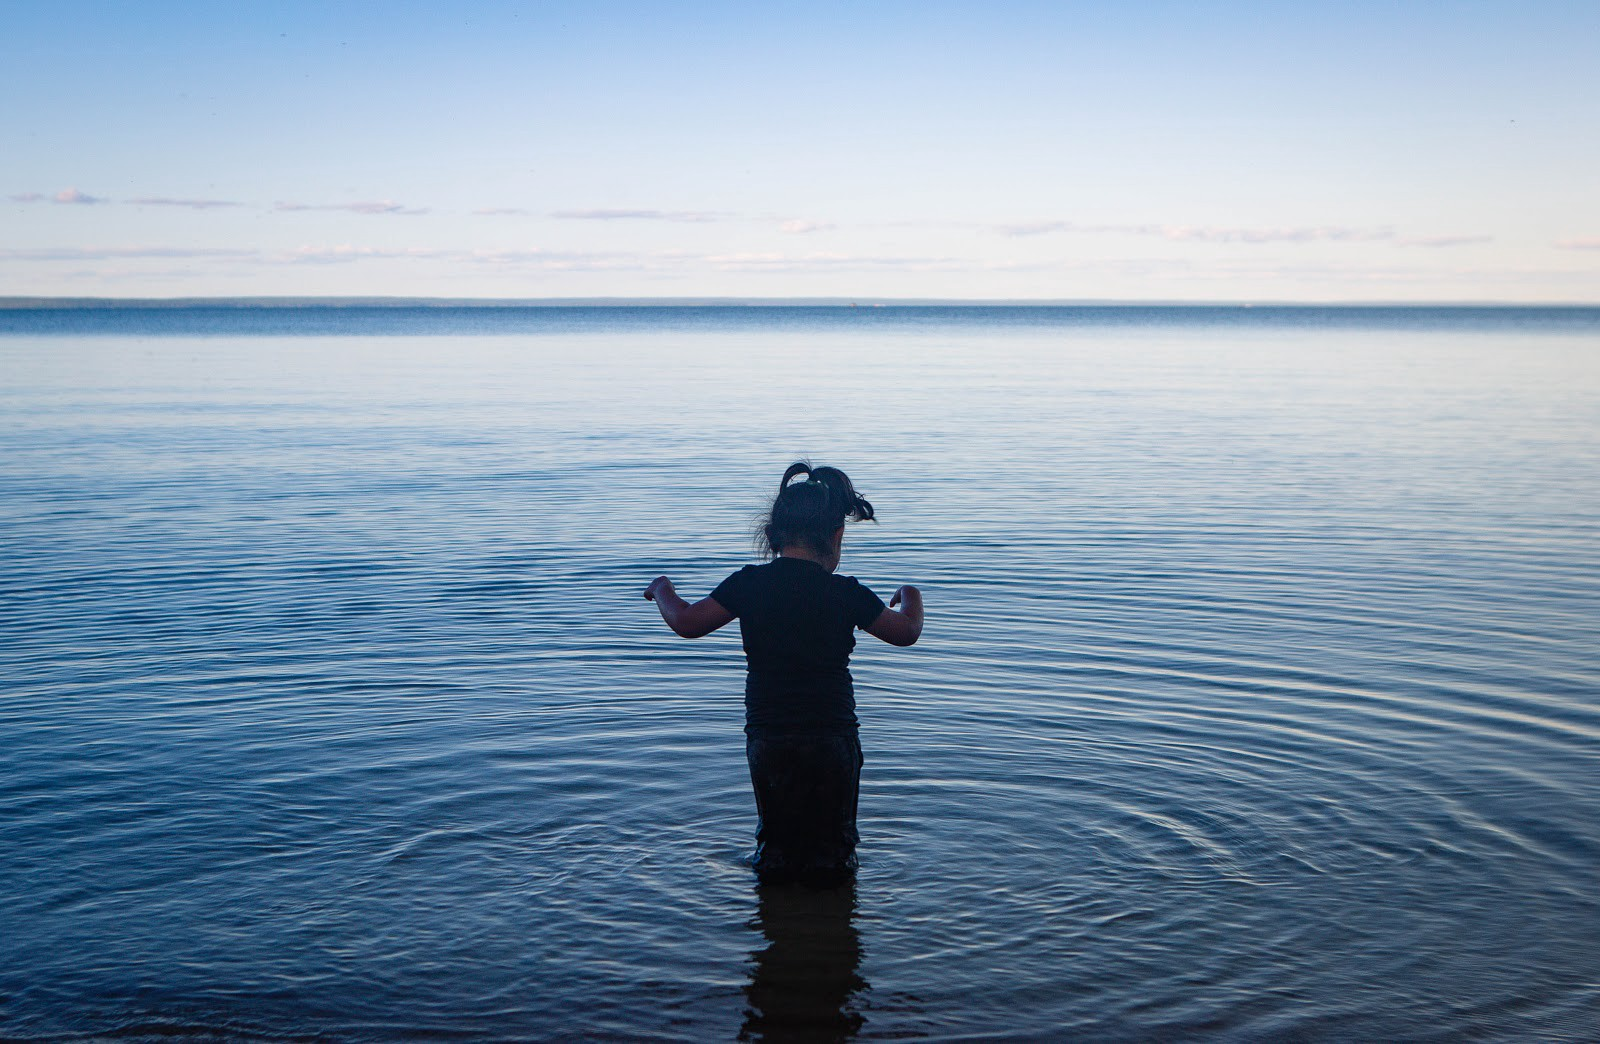 An indigenous child standing knee-deep in water which ripples around her and away toward the horizon. At Cold Lake, Alberta.